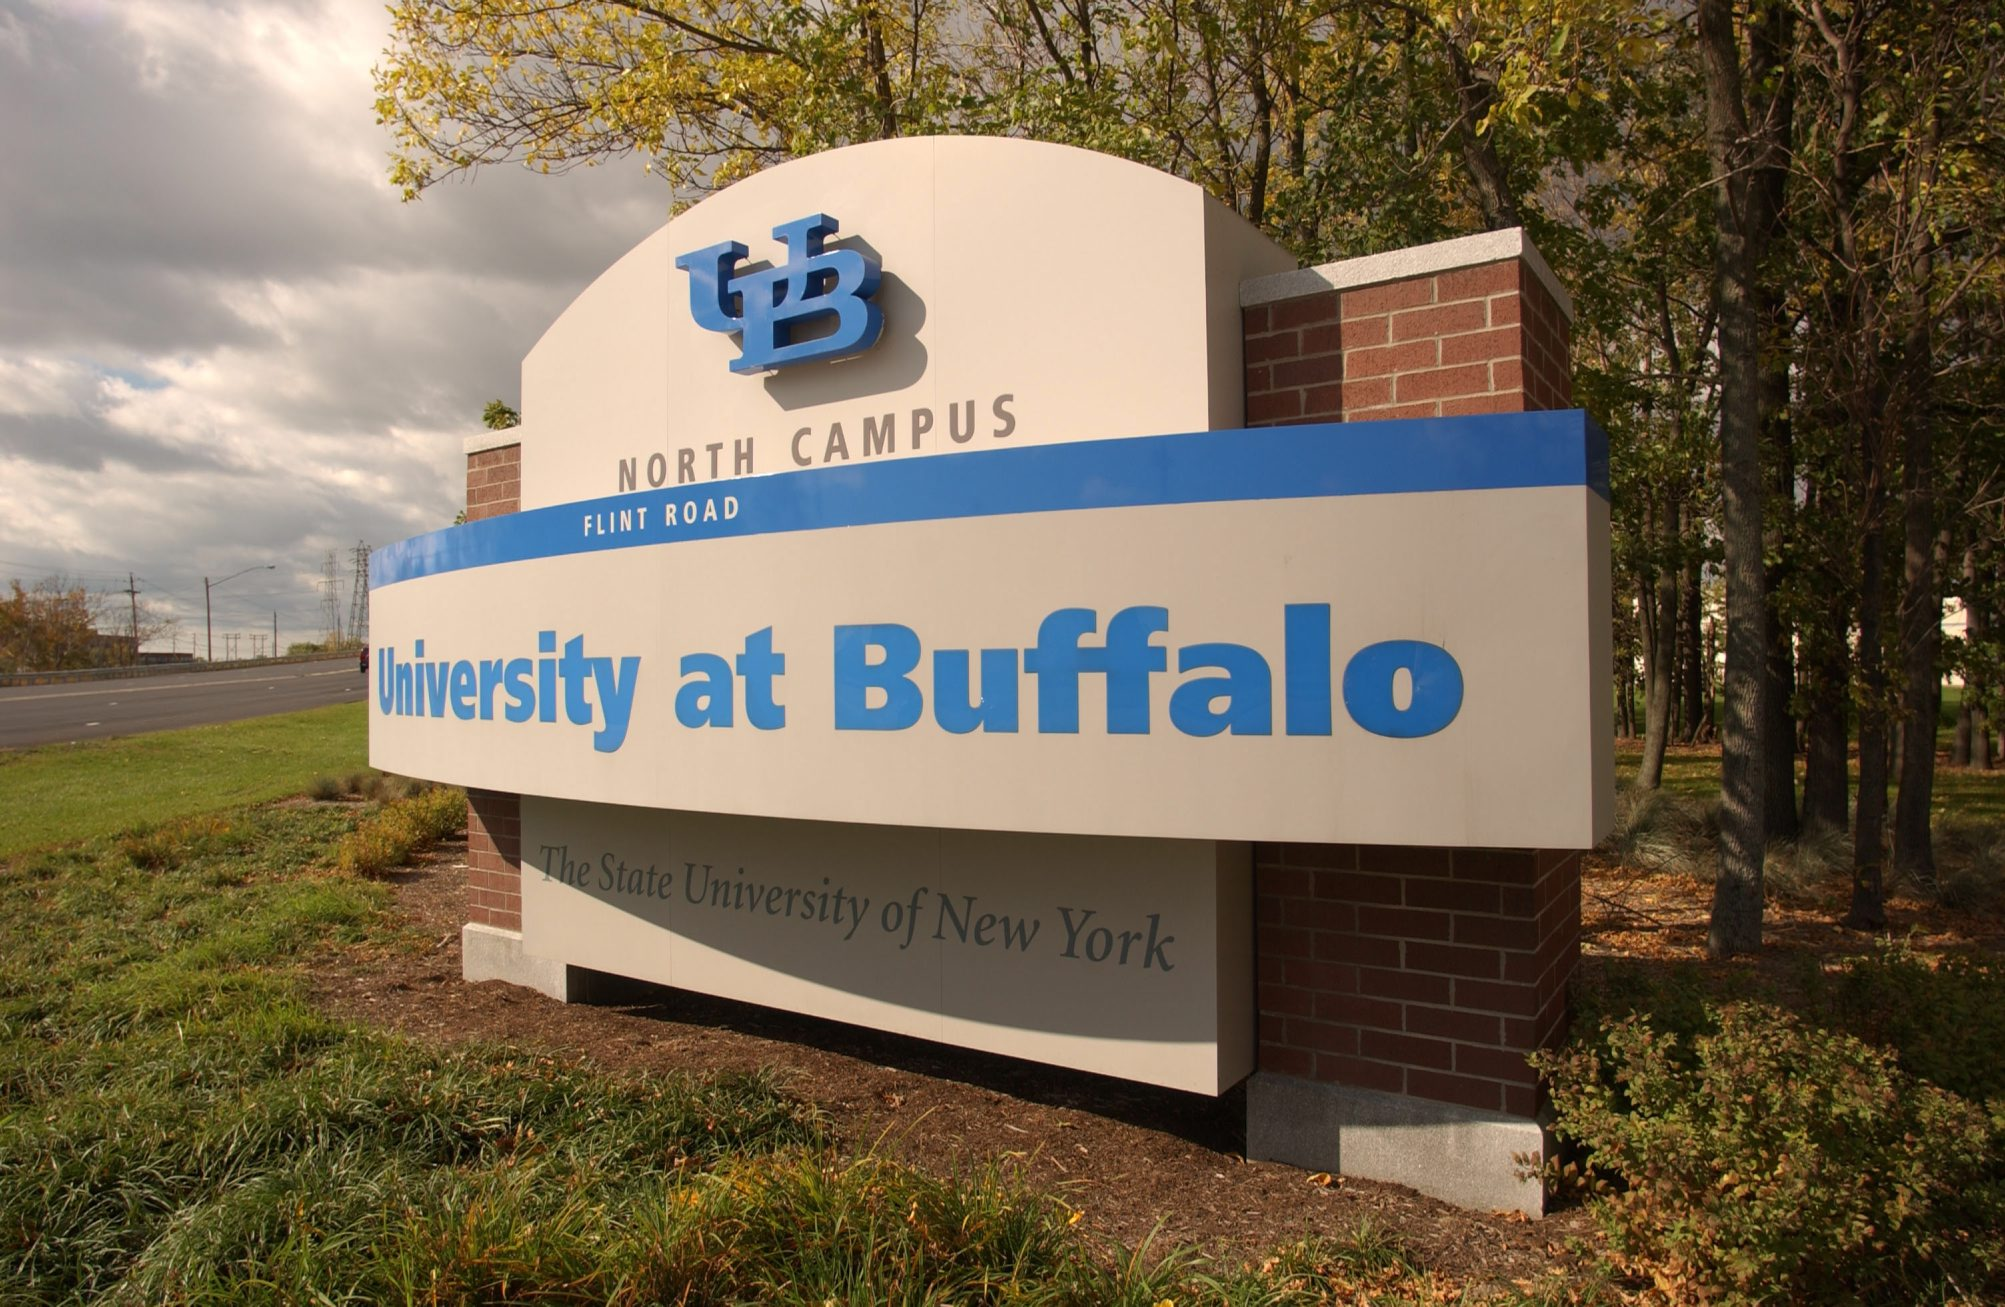 Dean Yerry, a retired UB maintenance supervisor, admitted accepting bribes to help a friend get a $1 million paint contract to paint dorm rooms at UB. (News file photo)